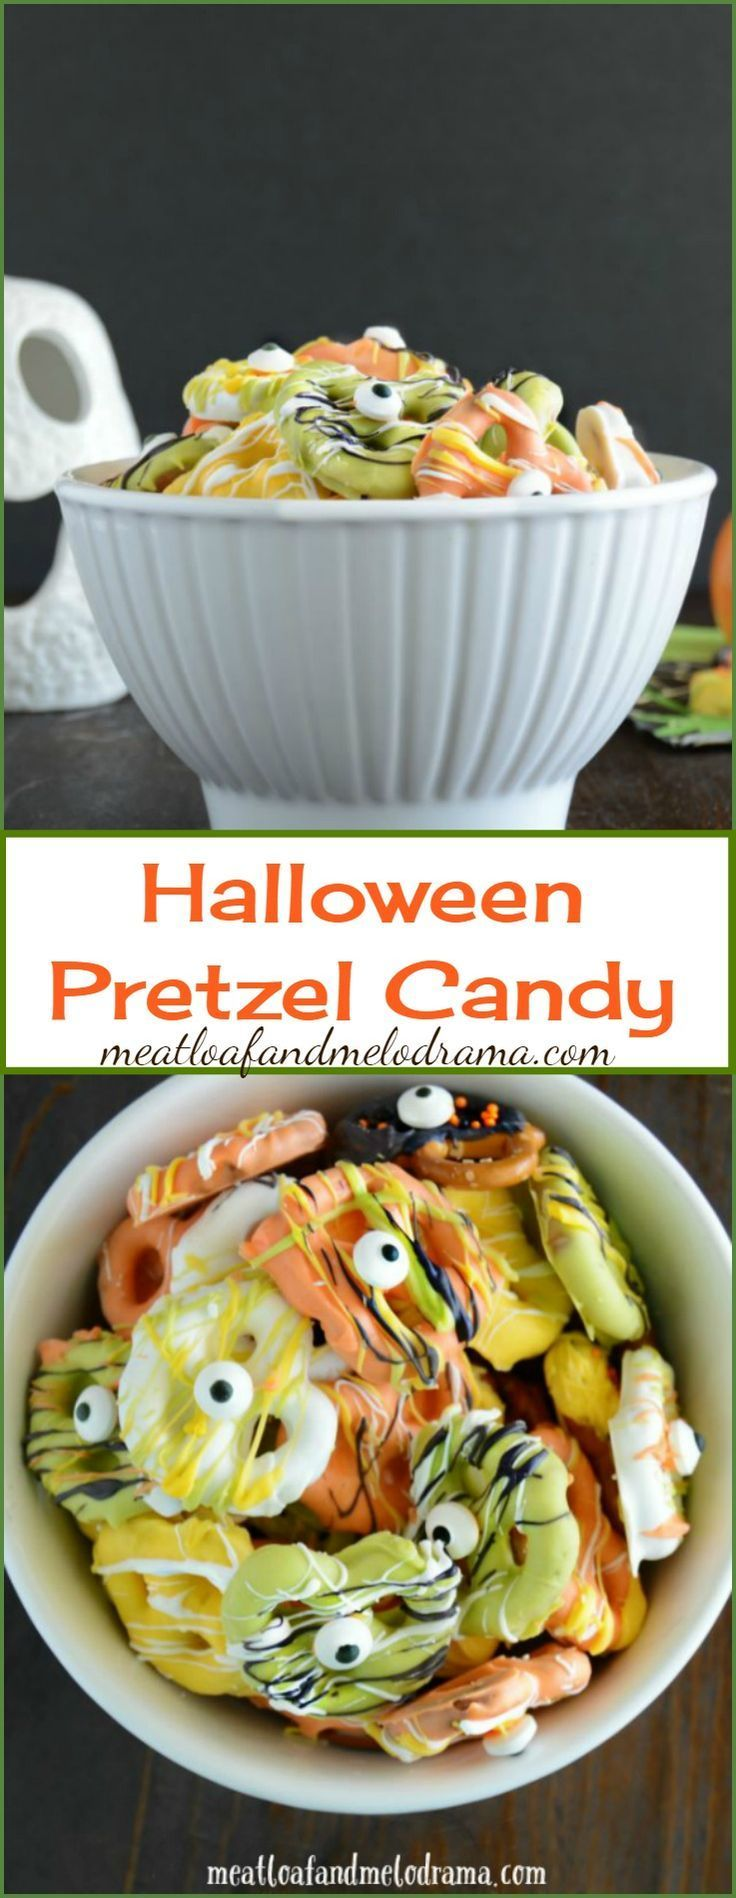 Easy Candy Coated Halloween Pretzels -- A quick and easy Halloween snack or party treat